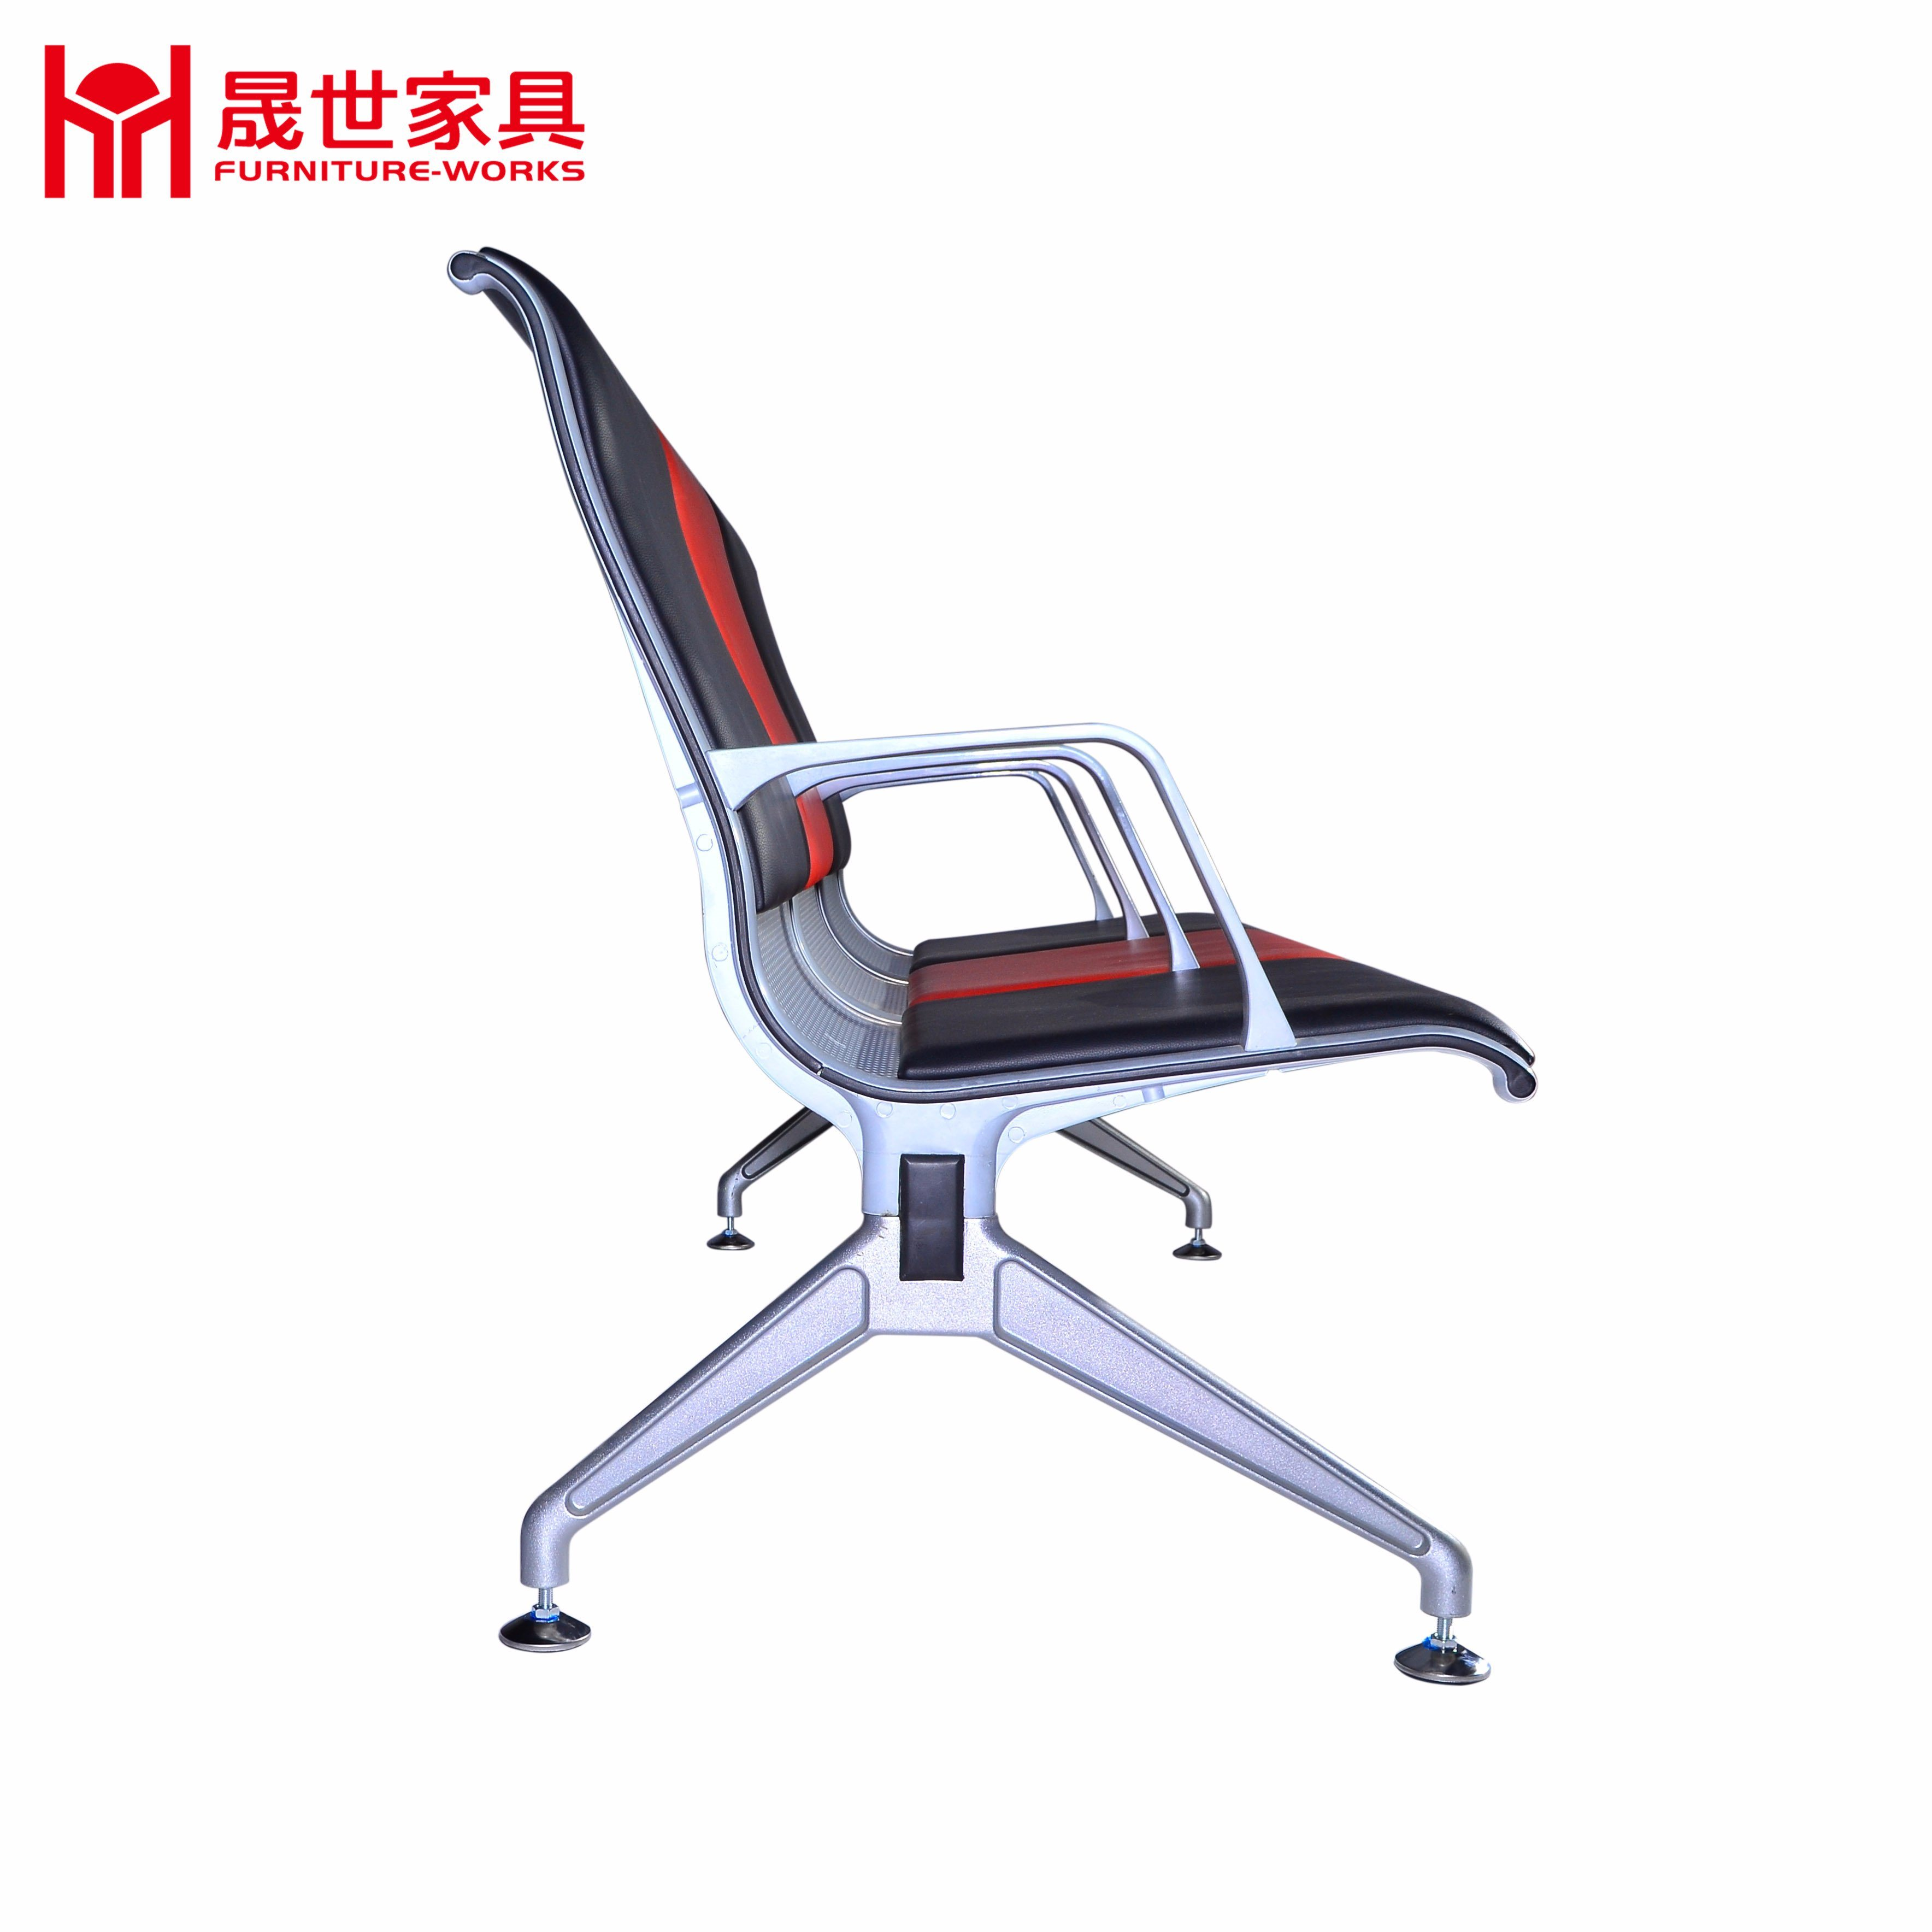 Modern Design Aluminum Alloy Public Waiting Chair / Airport Waiting Chairs / Waiting Room Chairs